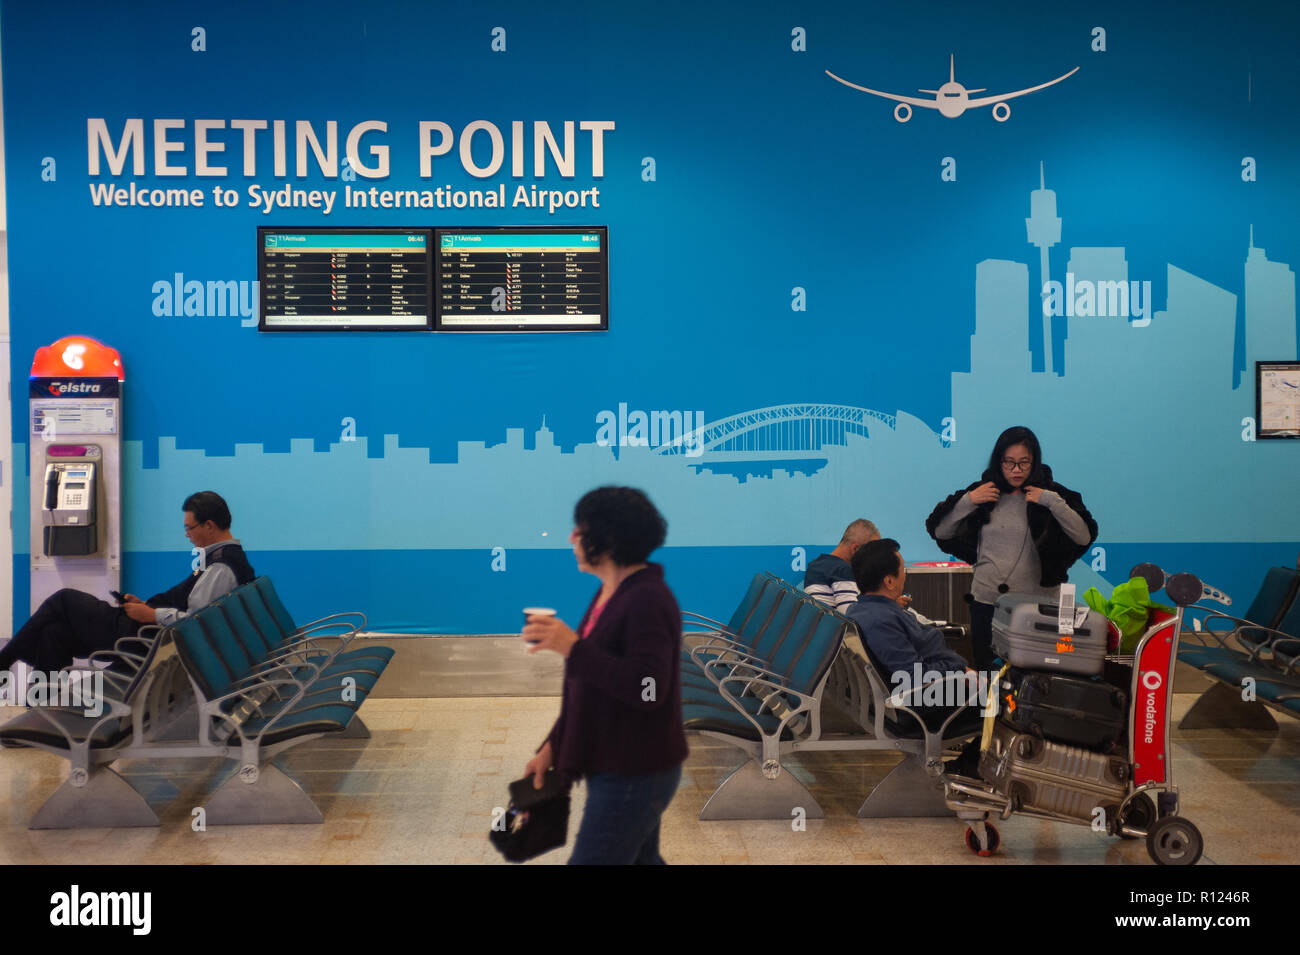 04.05.2018, Sydney, New South Wales, Australia - Passengers are waiting in the arrival area at Sydney's International Airport Kingsford Smith. - Stock Image